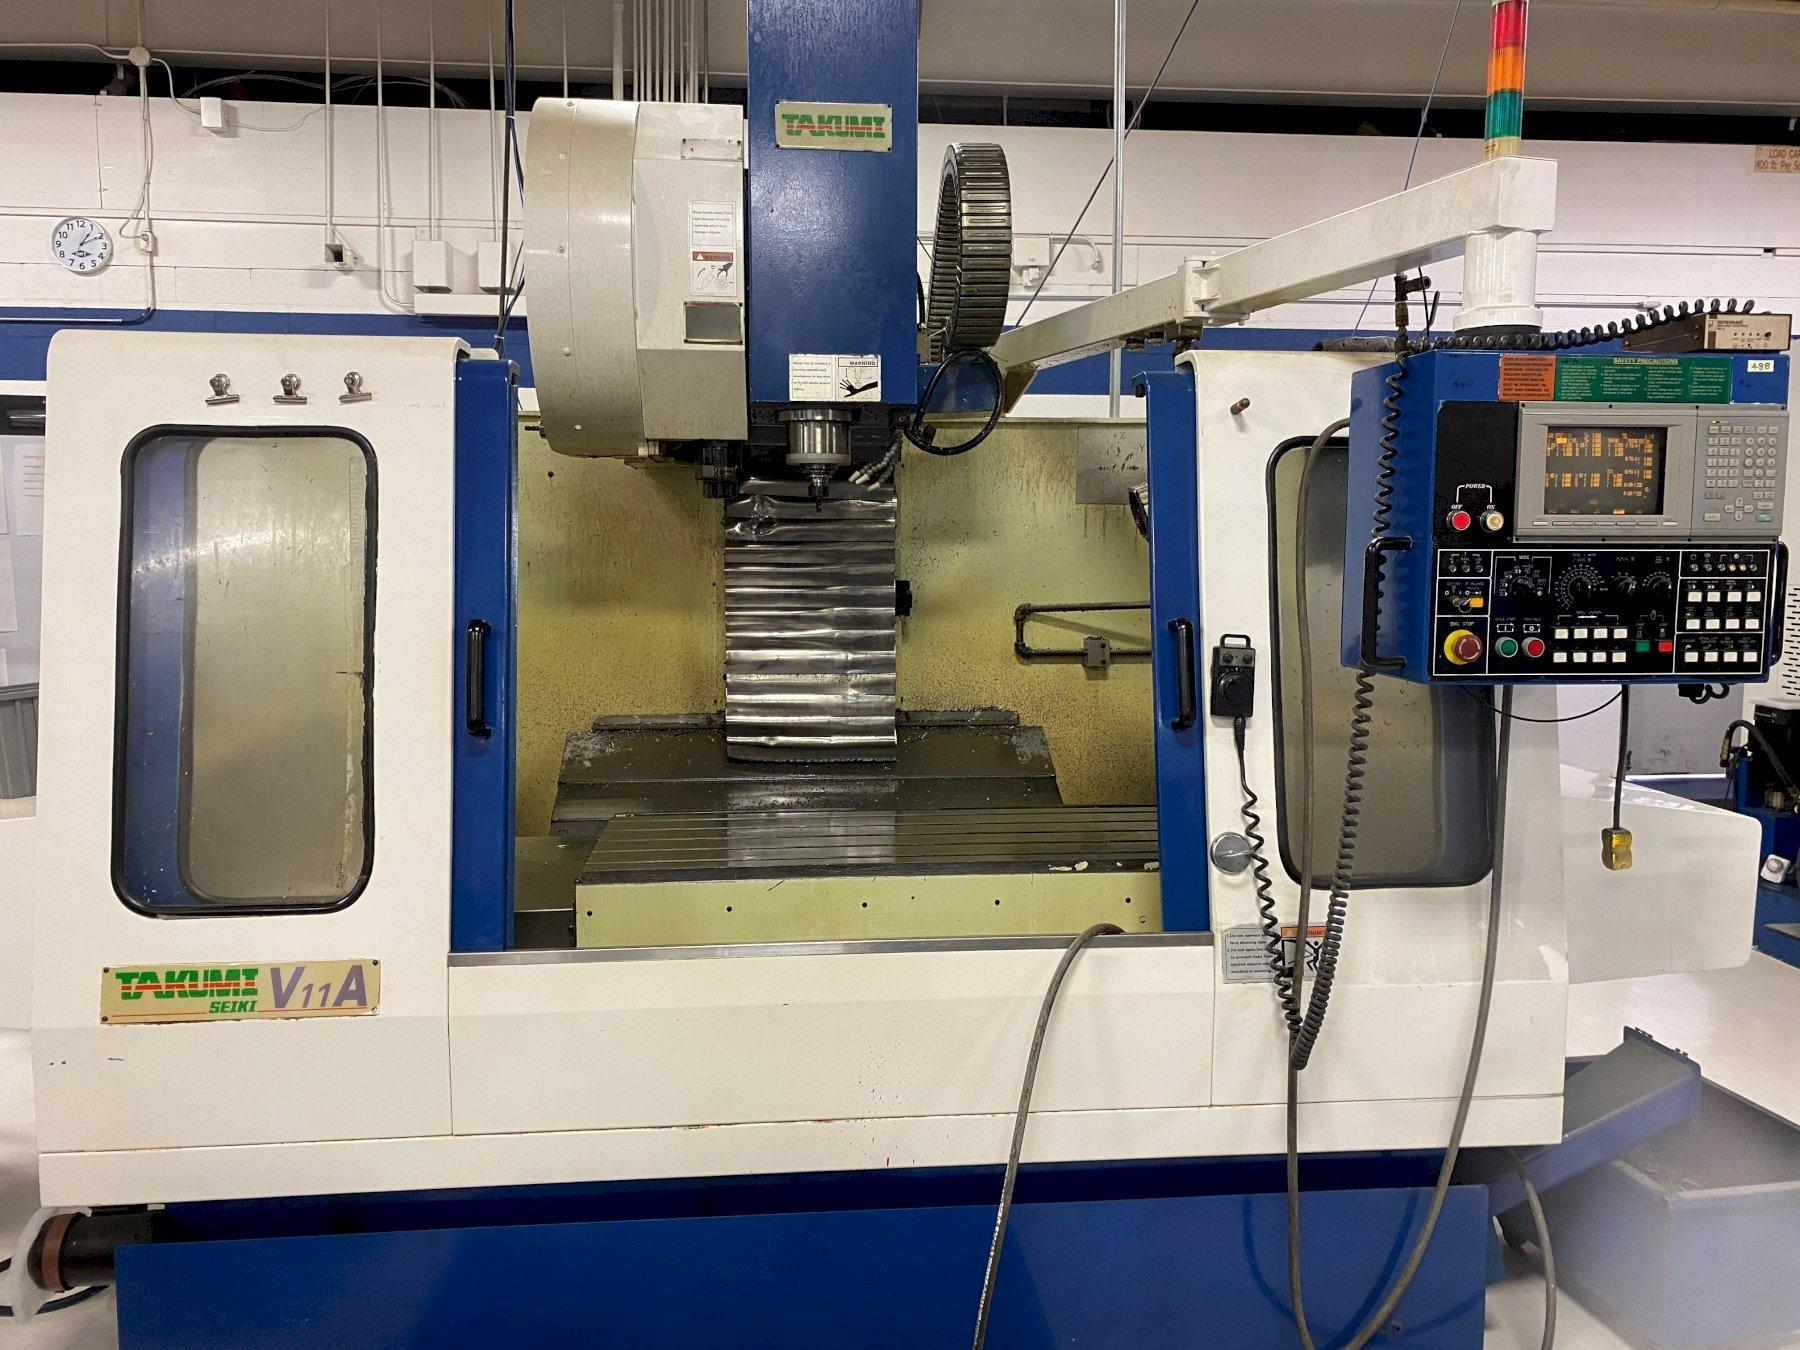 Takumi Model V11A CNC Vertical Machining Center, New 1998